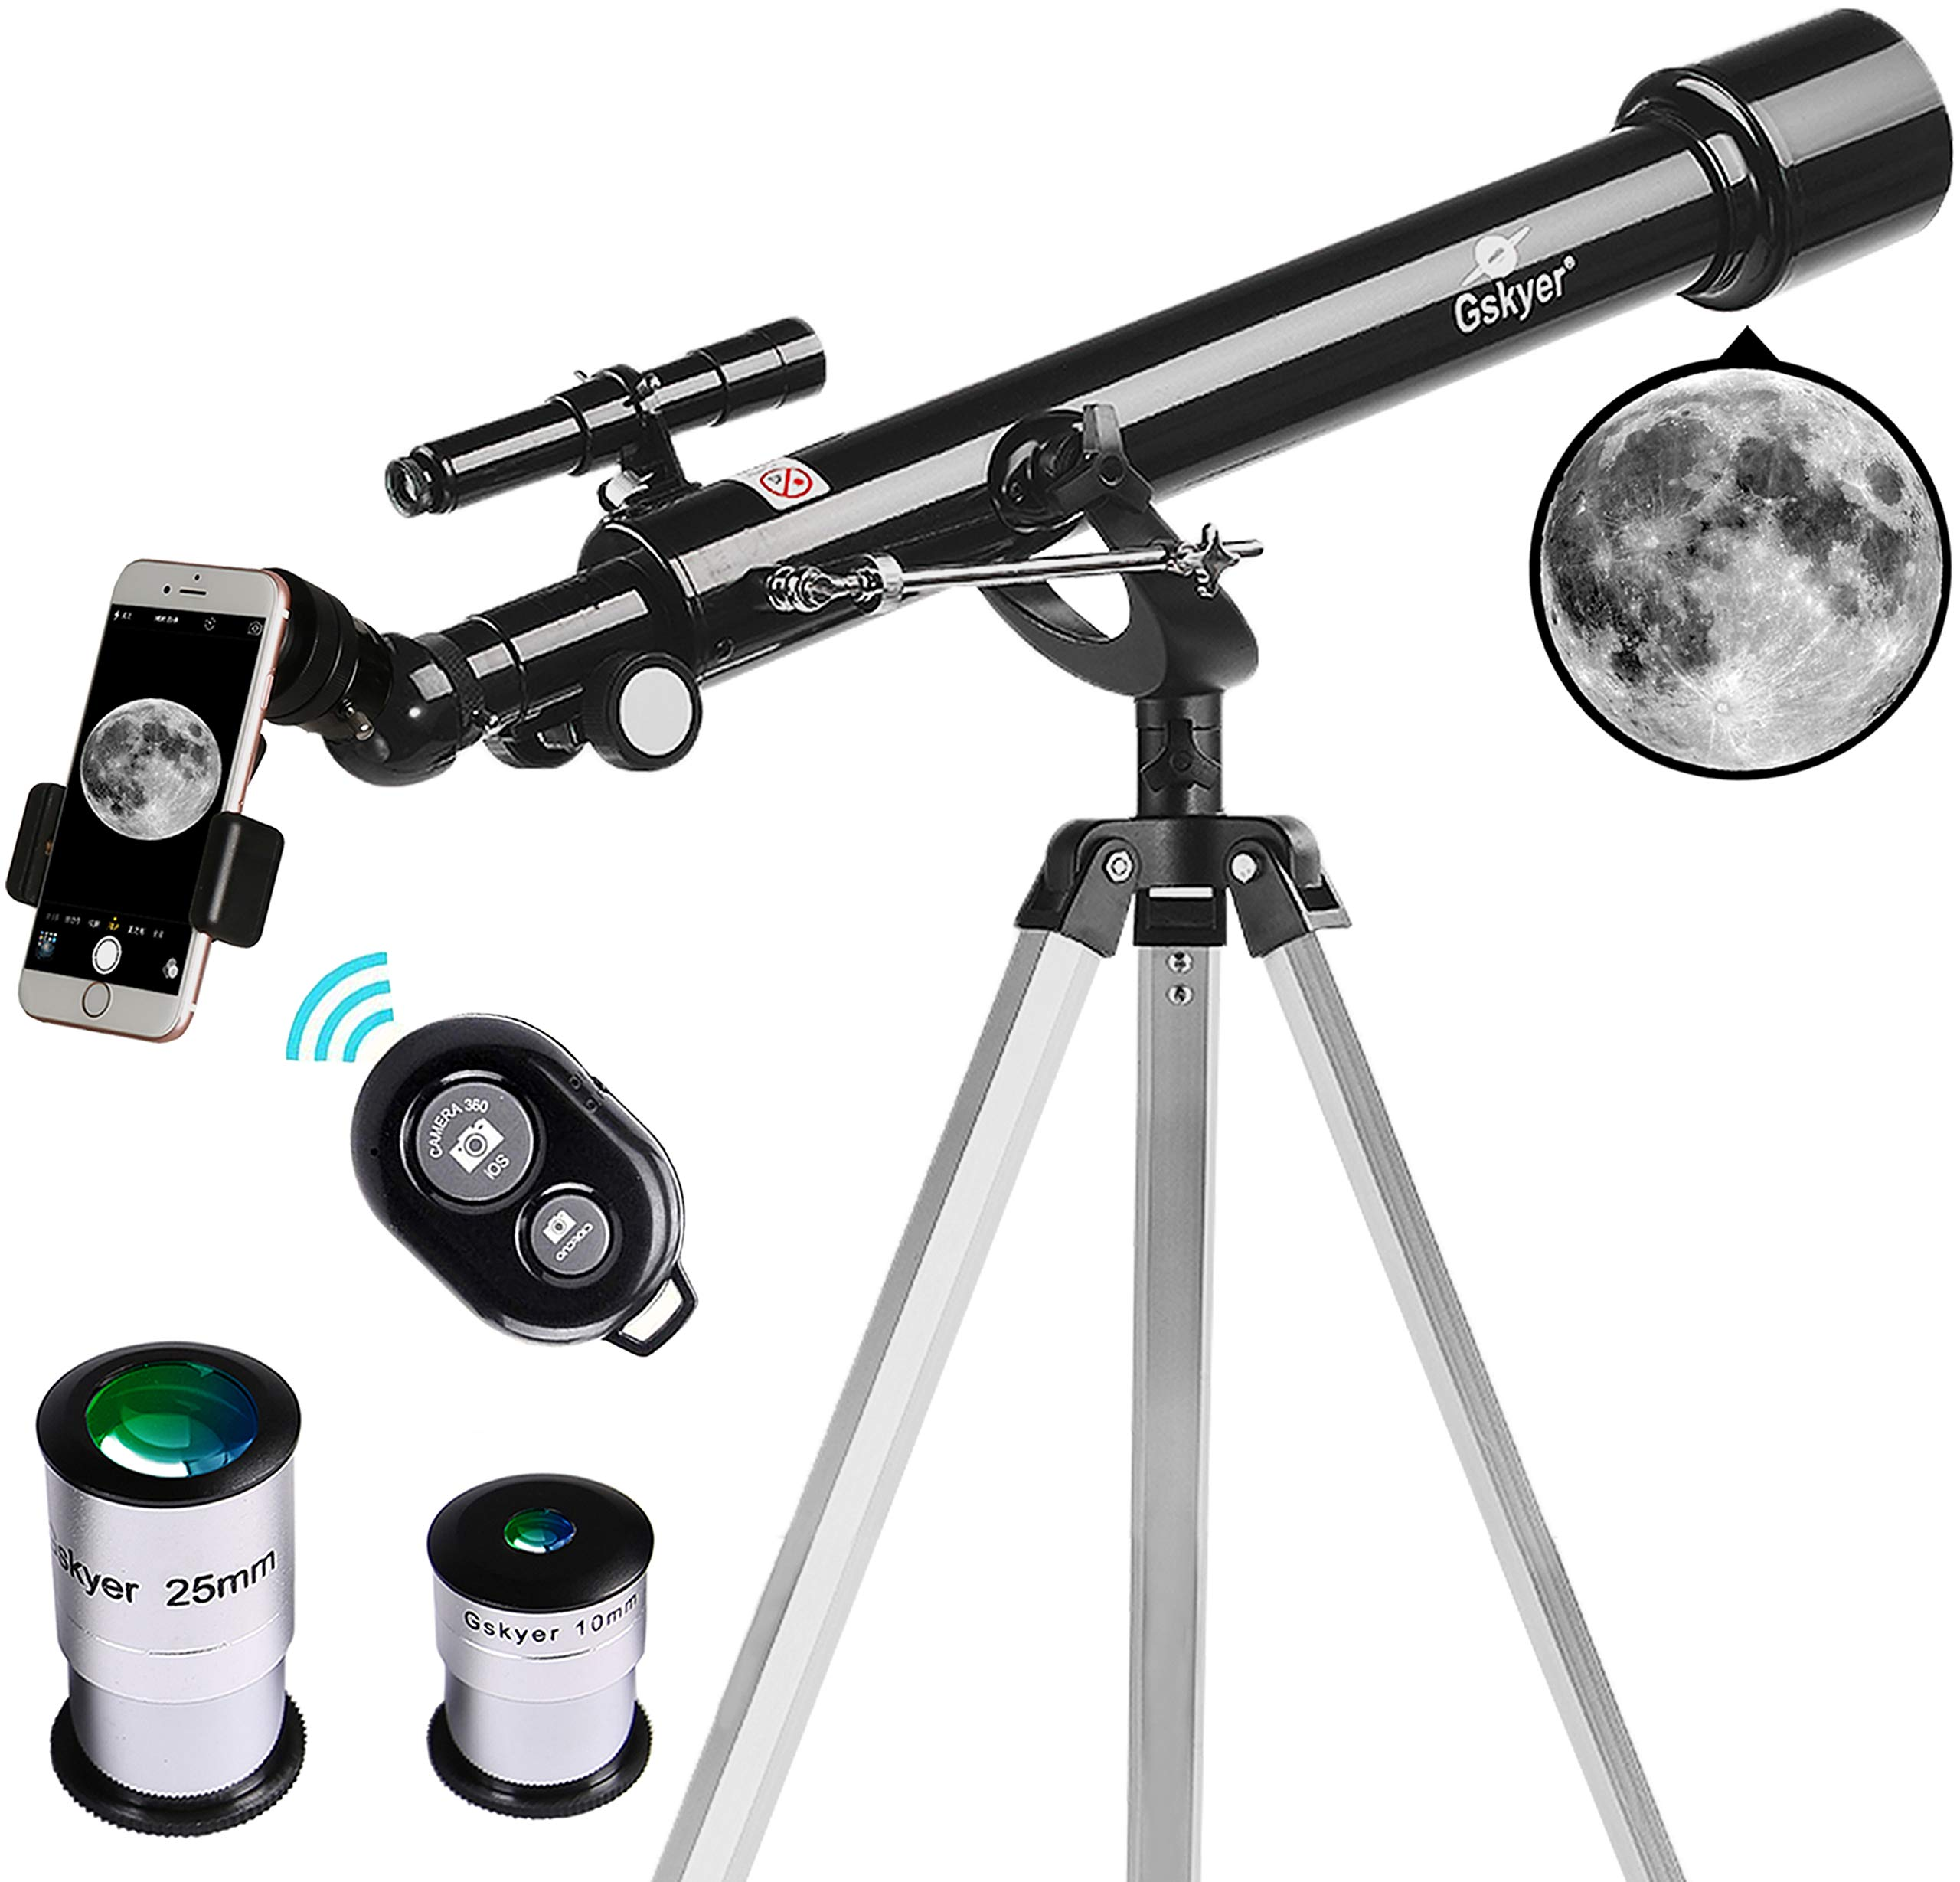 Telescope, 60mm Aperture 700mm AZ Mount Astronomy Refractor Telescope,Travel Scope with Smartphone Adapter and Wireless Remote for Kids & Beginner